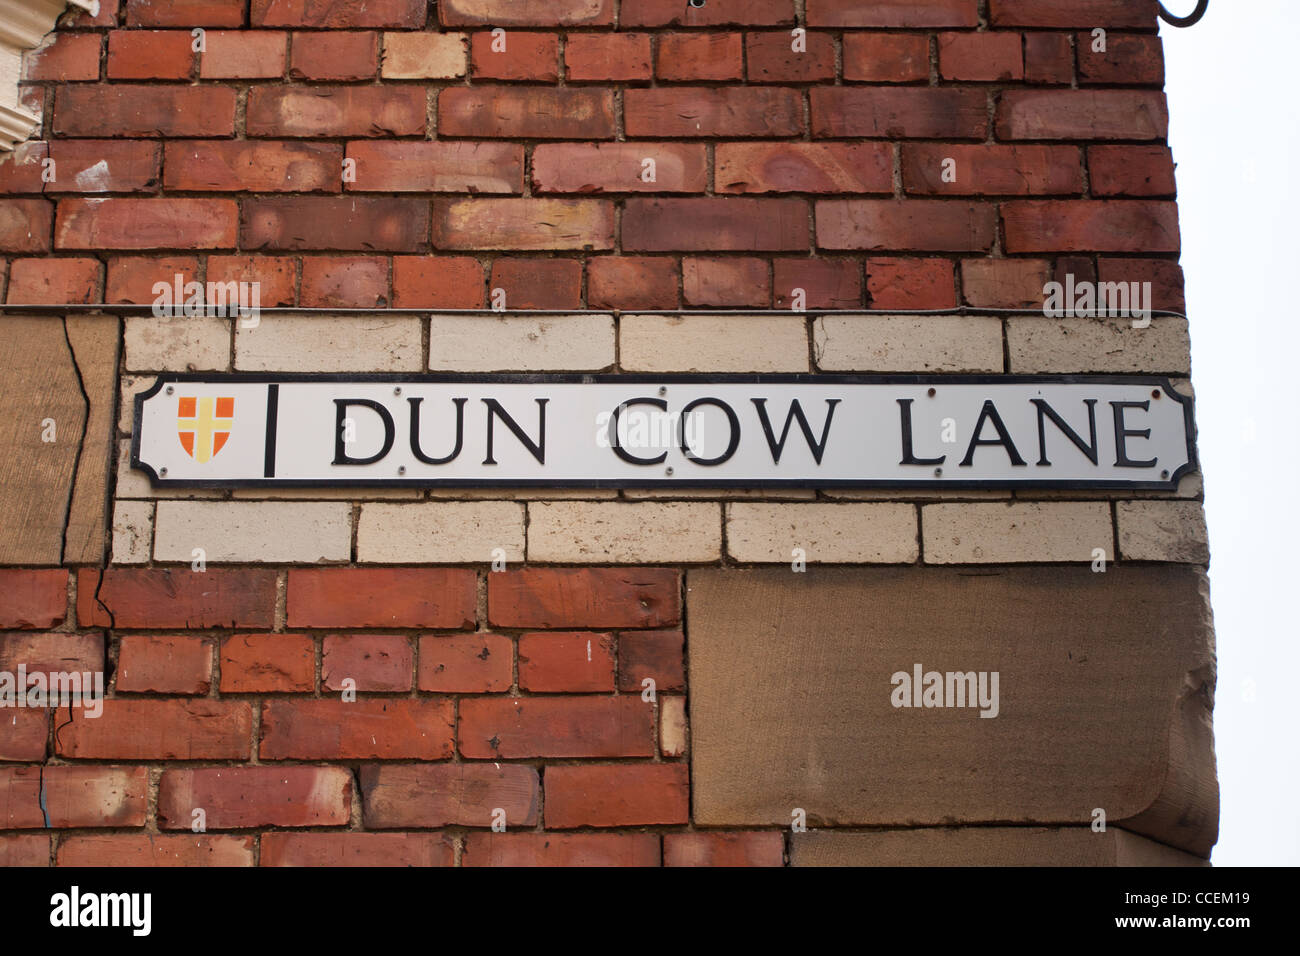 Street sign for Dun Cow Lane, a historic street in Durham City, England. - Stock Image